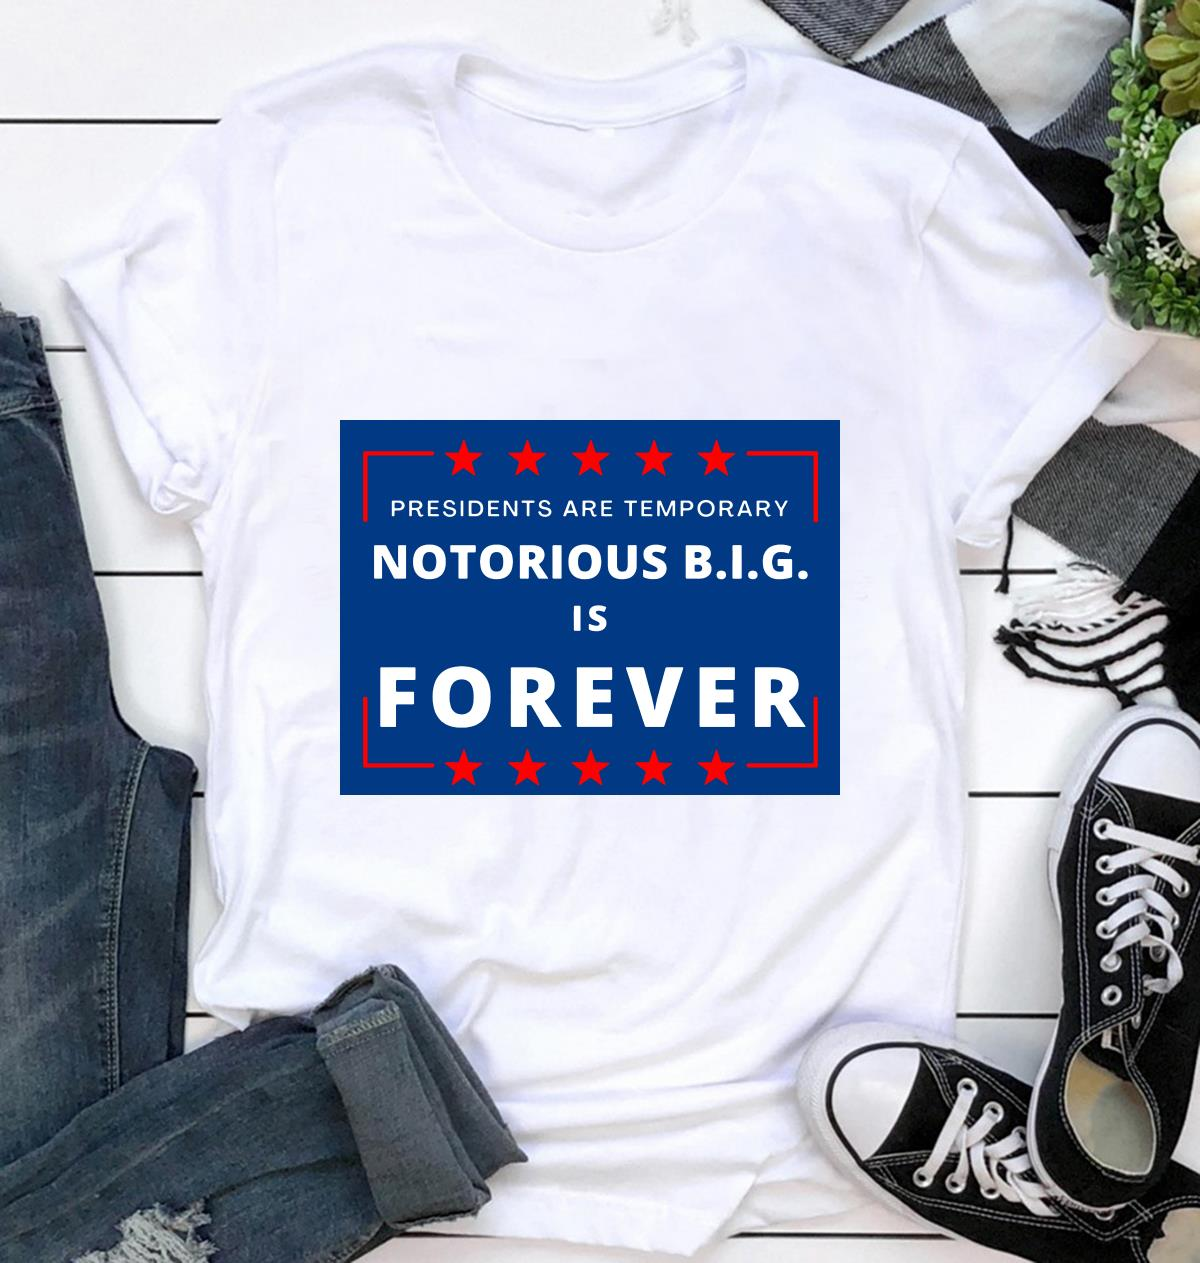 Presidents are Temporary Notorious BIG is forever yard sign ca